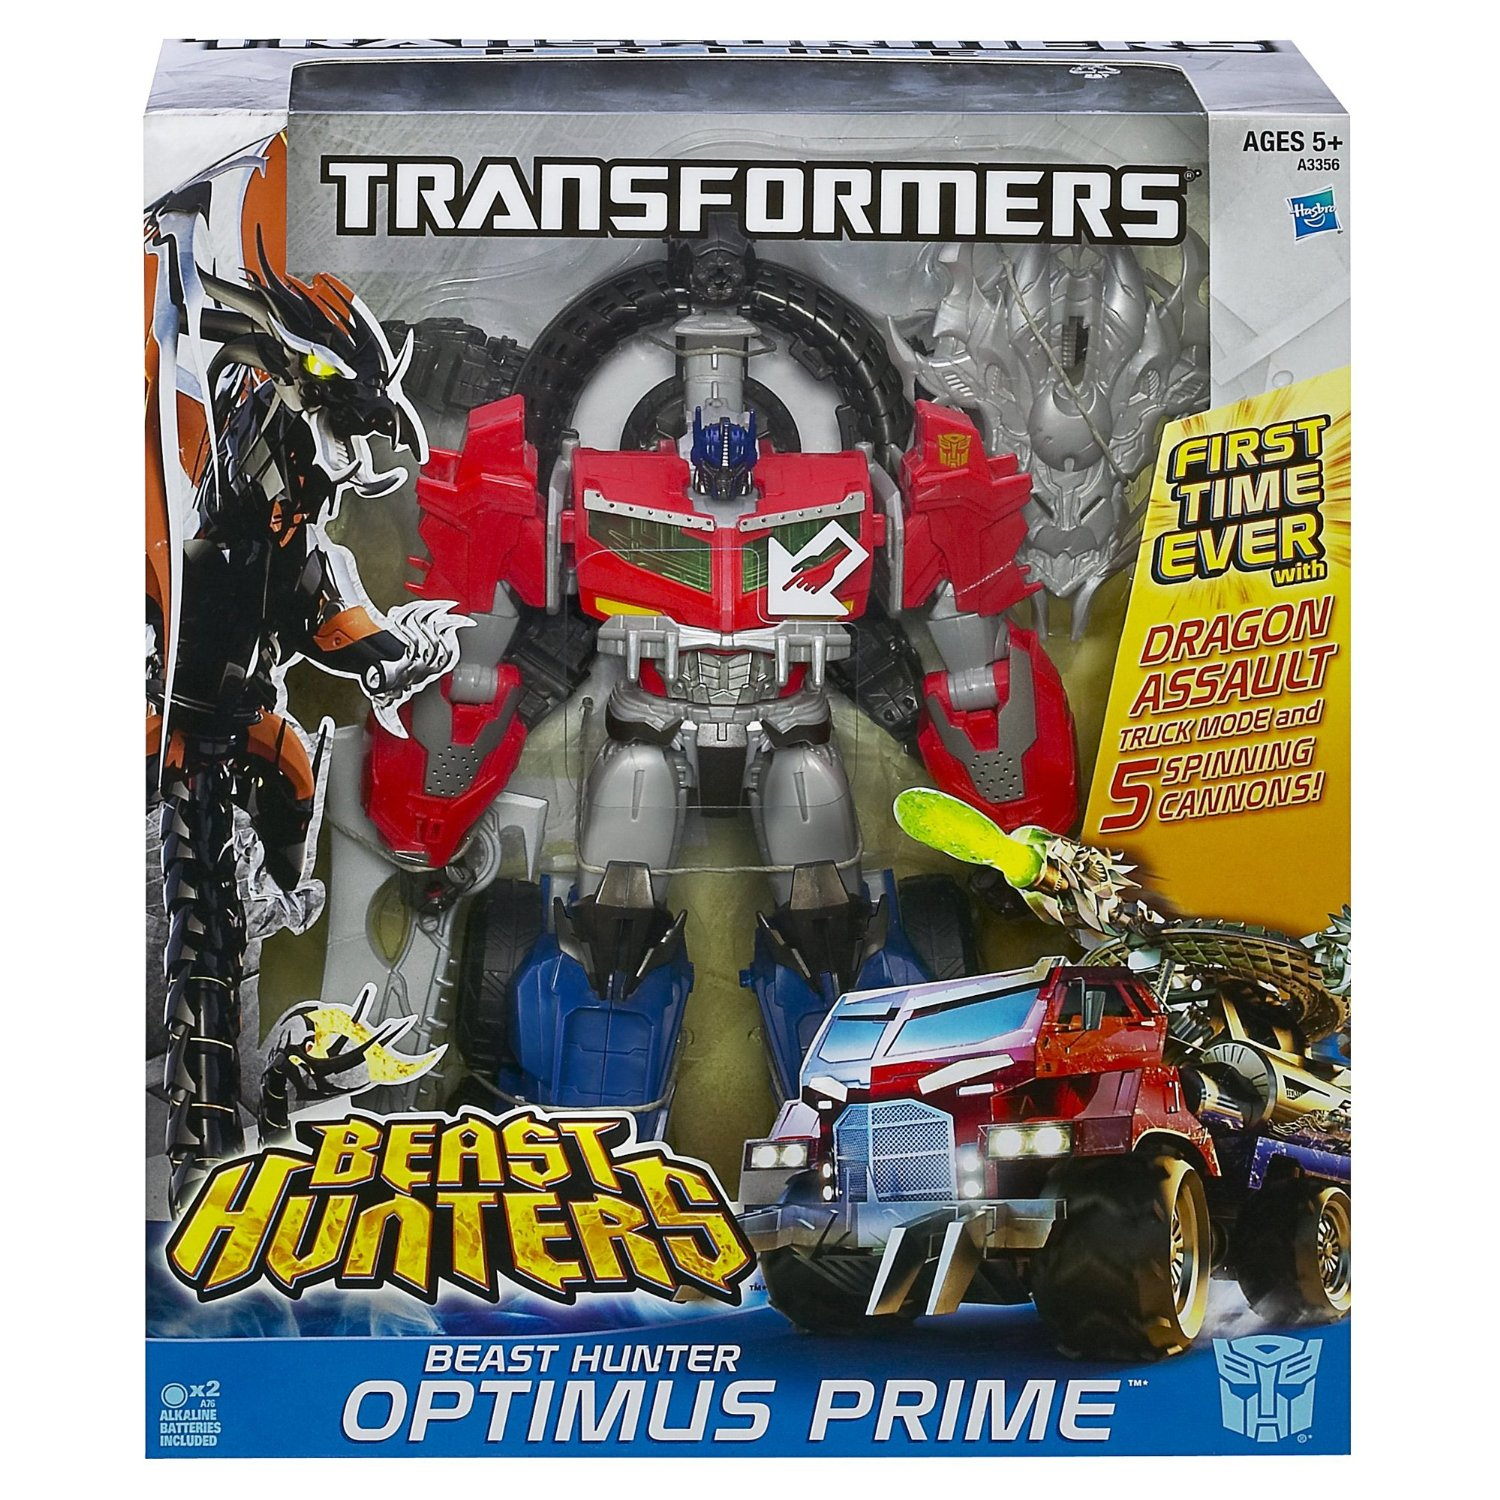 Transformers Beast Hunters Optimus Prime Ultimate class